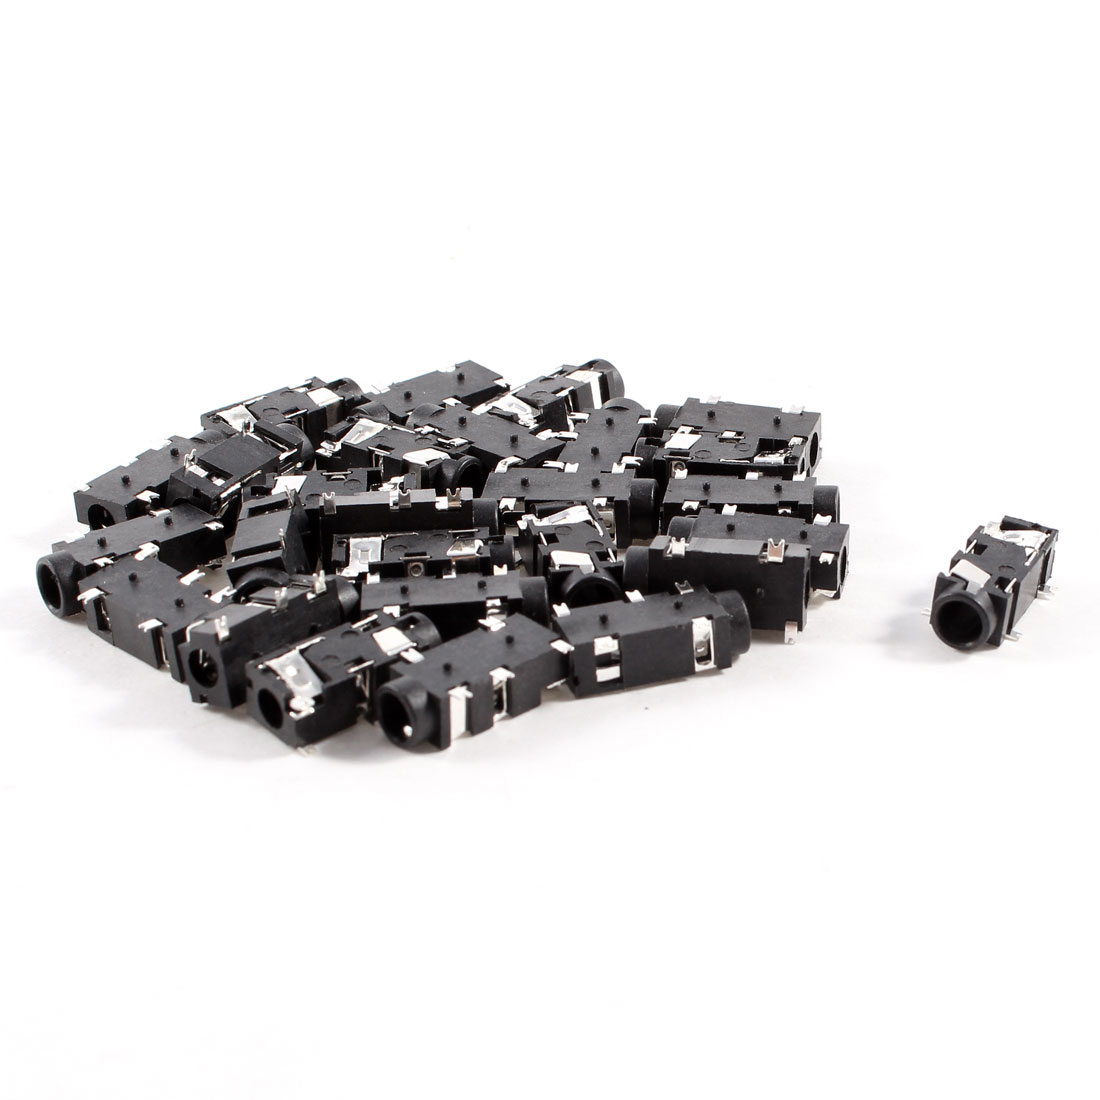 30 Pcs 5-Pin 3.5mm Female Headphone Stereo Socket Jack Adapter Black